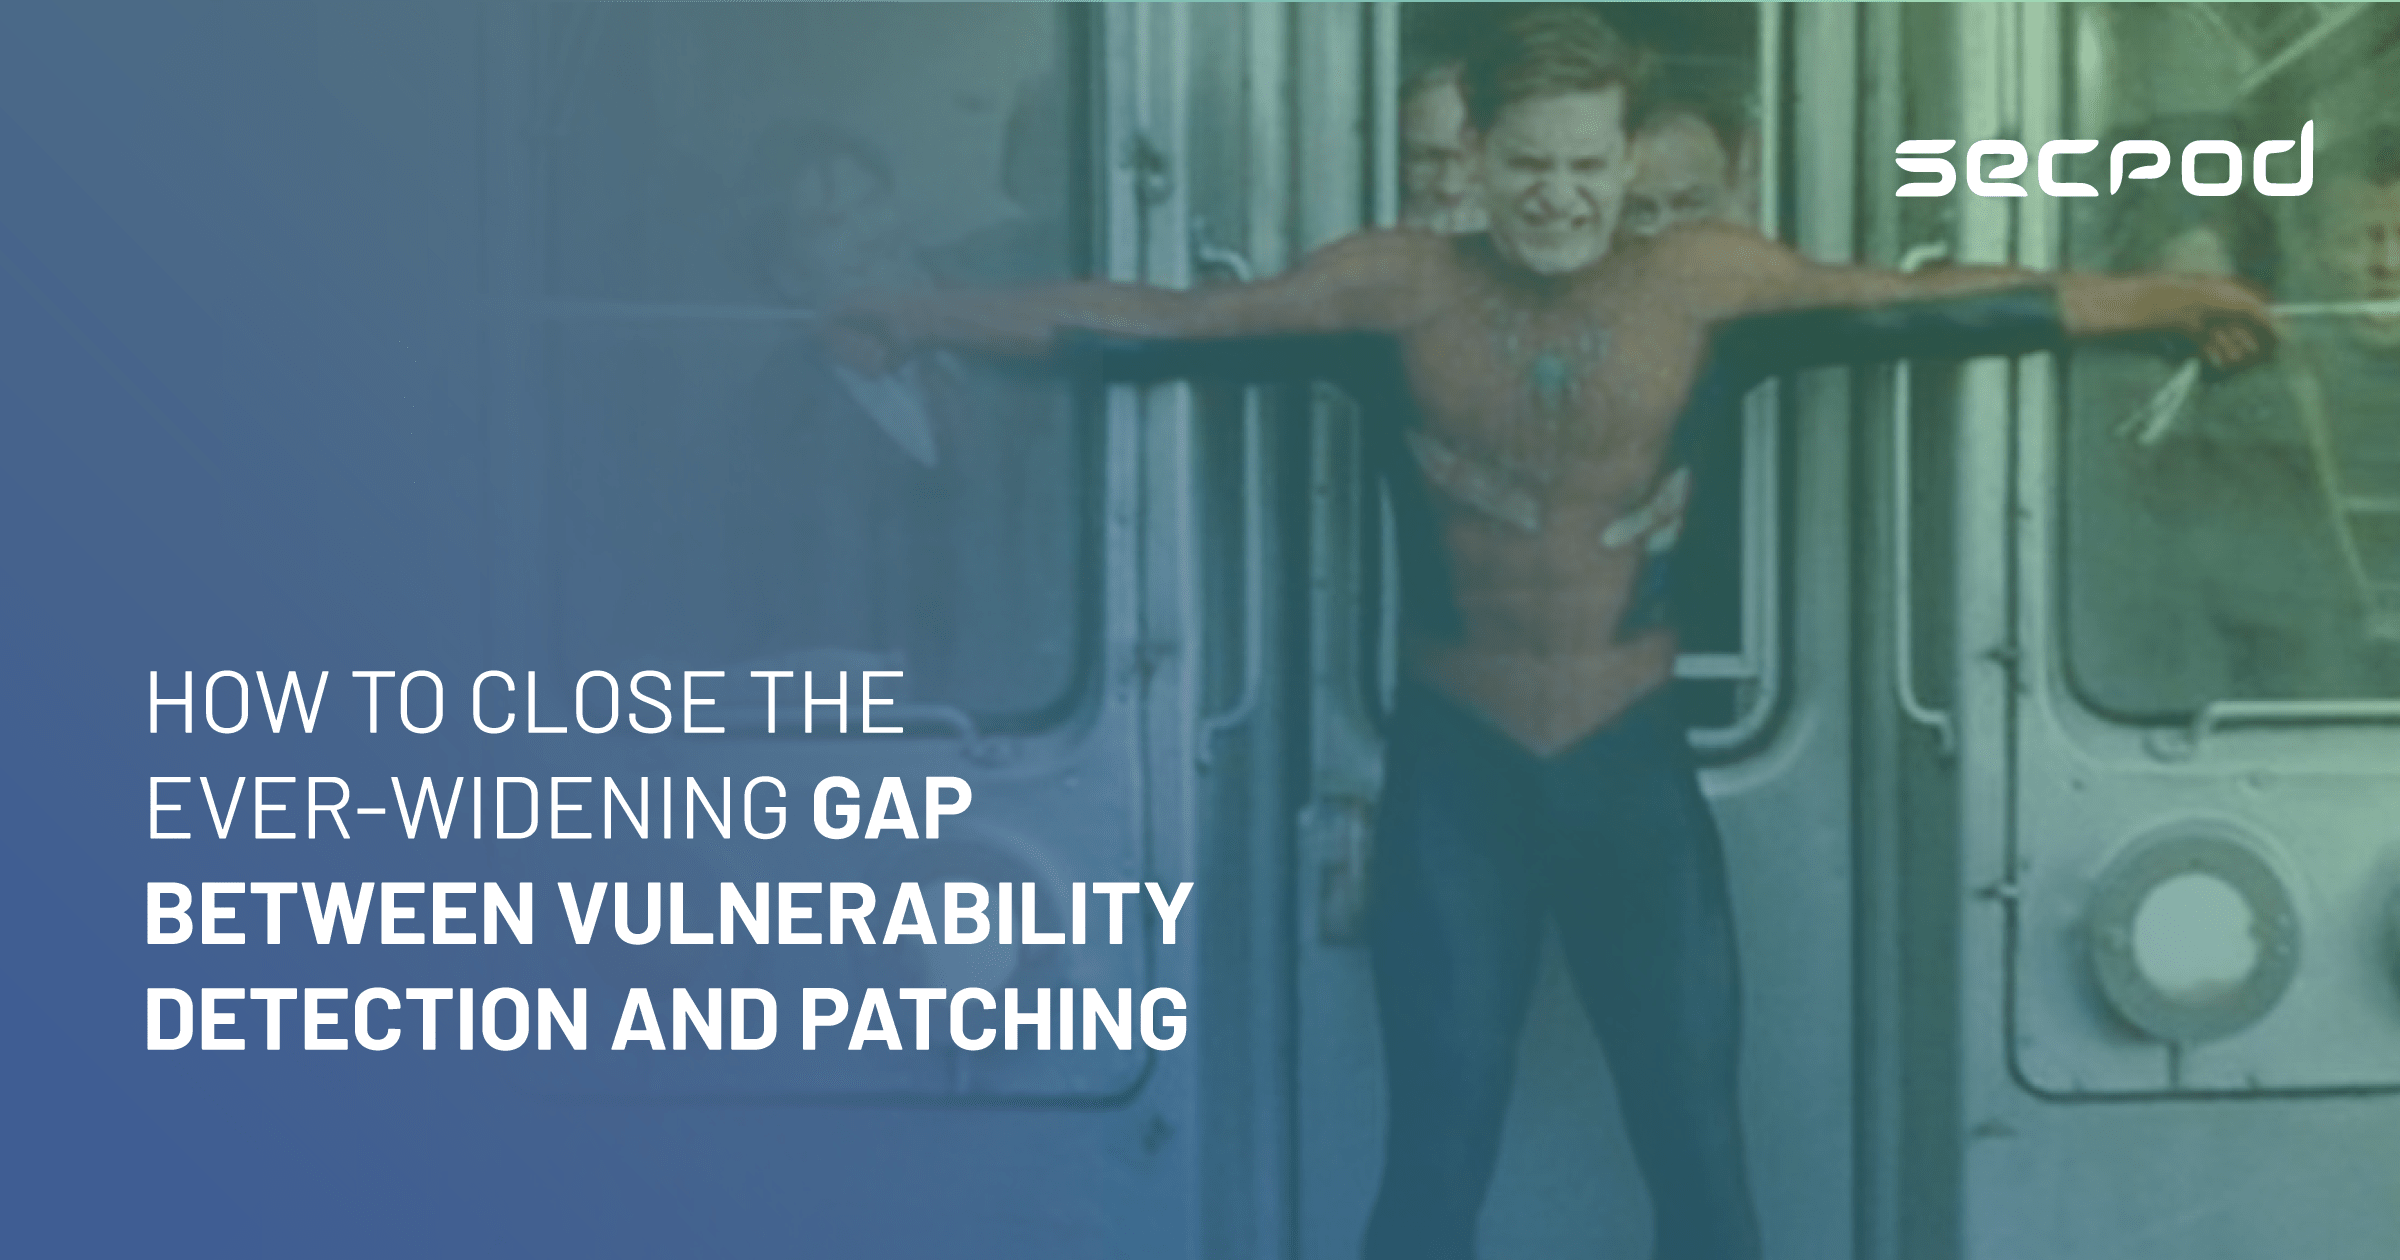 Closing the Ever-Widening Gap Between Vulnerability Detection and Patching